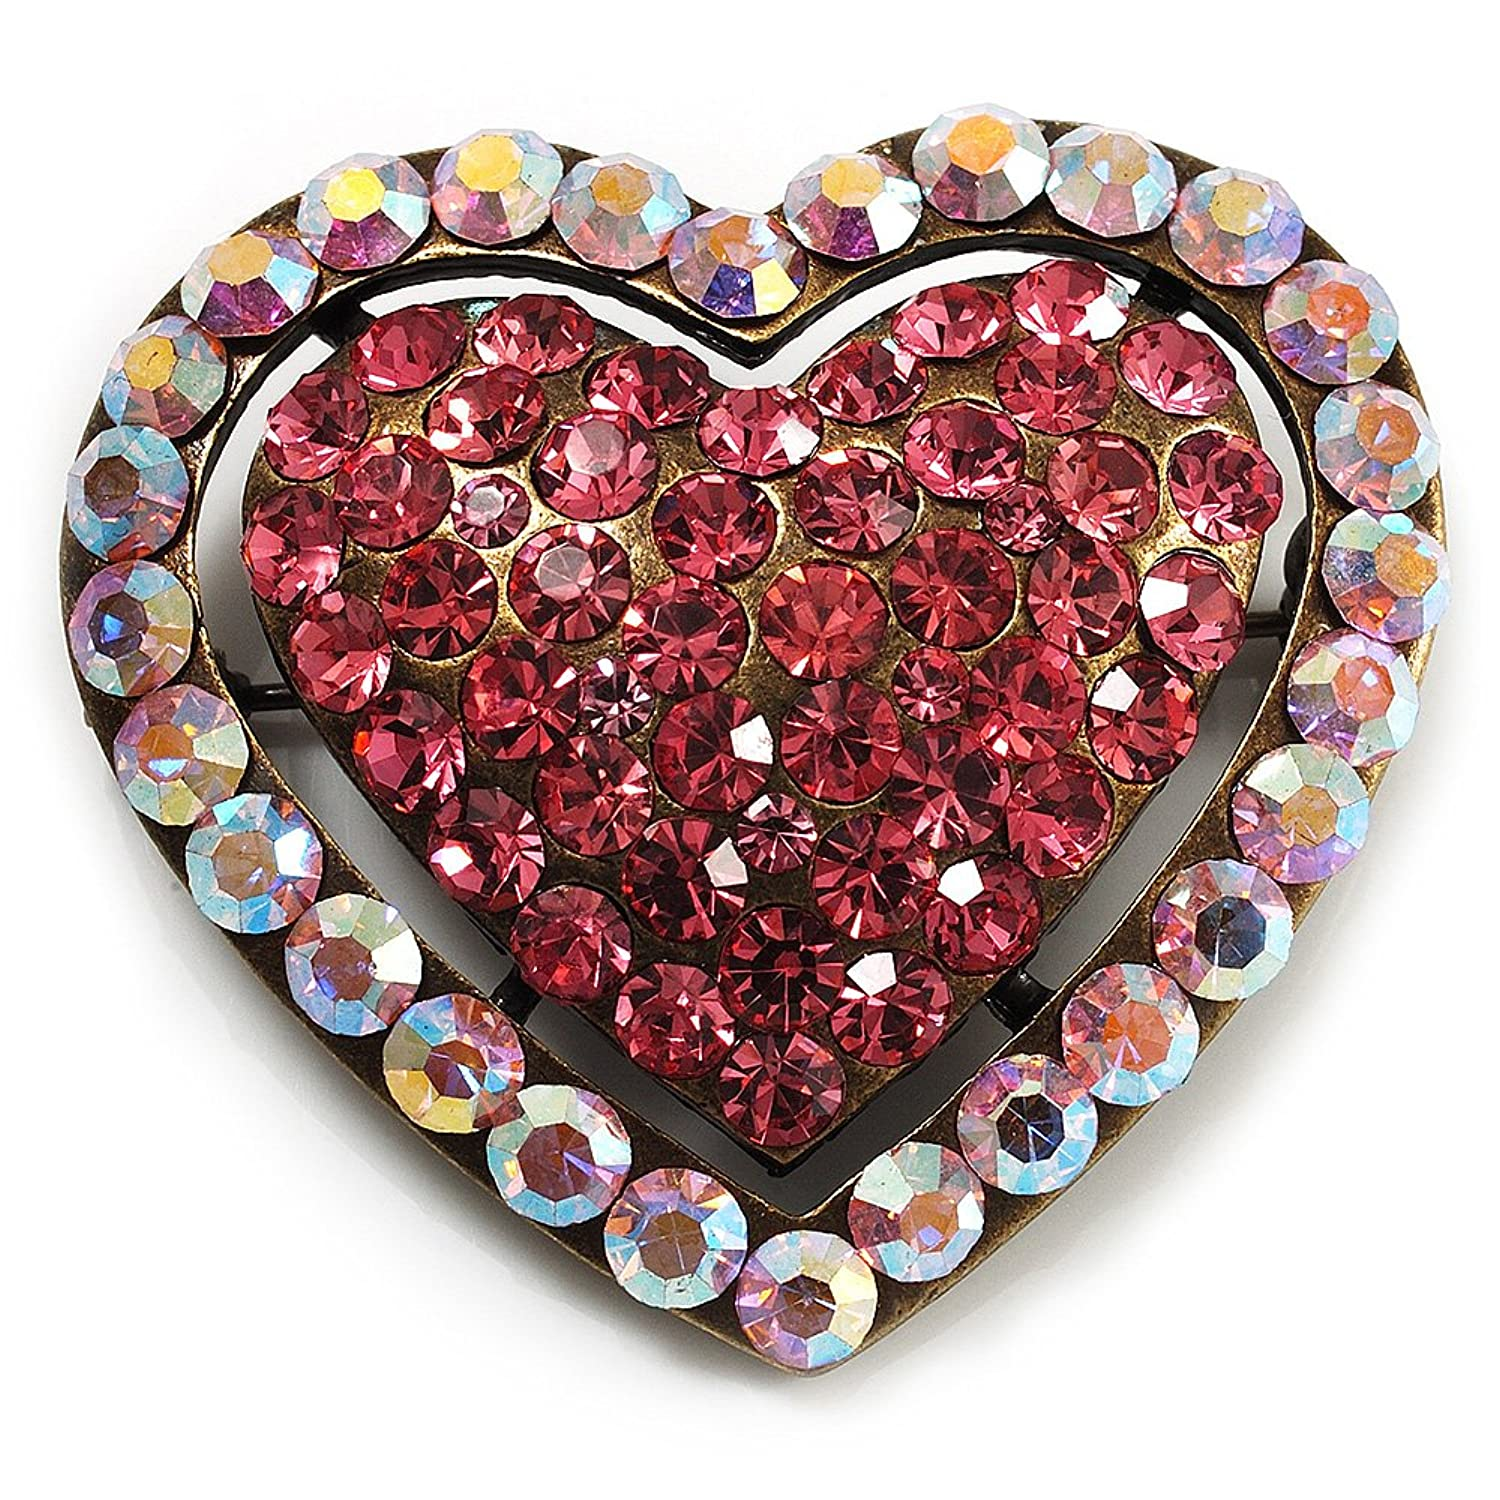 Avalaya Pink Diamante Pave Set 'Heart' Brooch In Silver Plating - 3.5cm Length 1ipYGZC